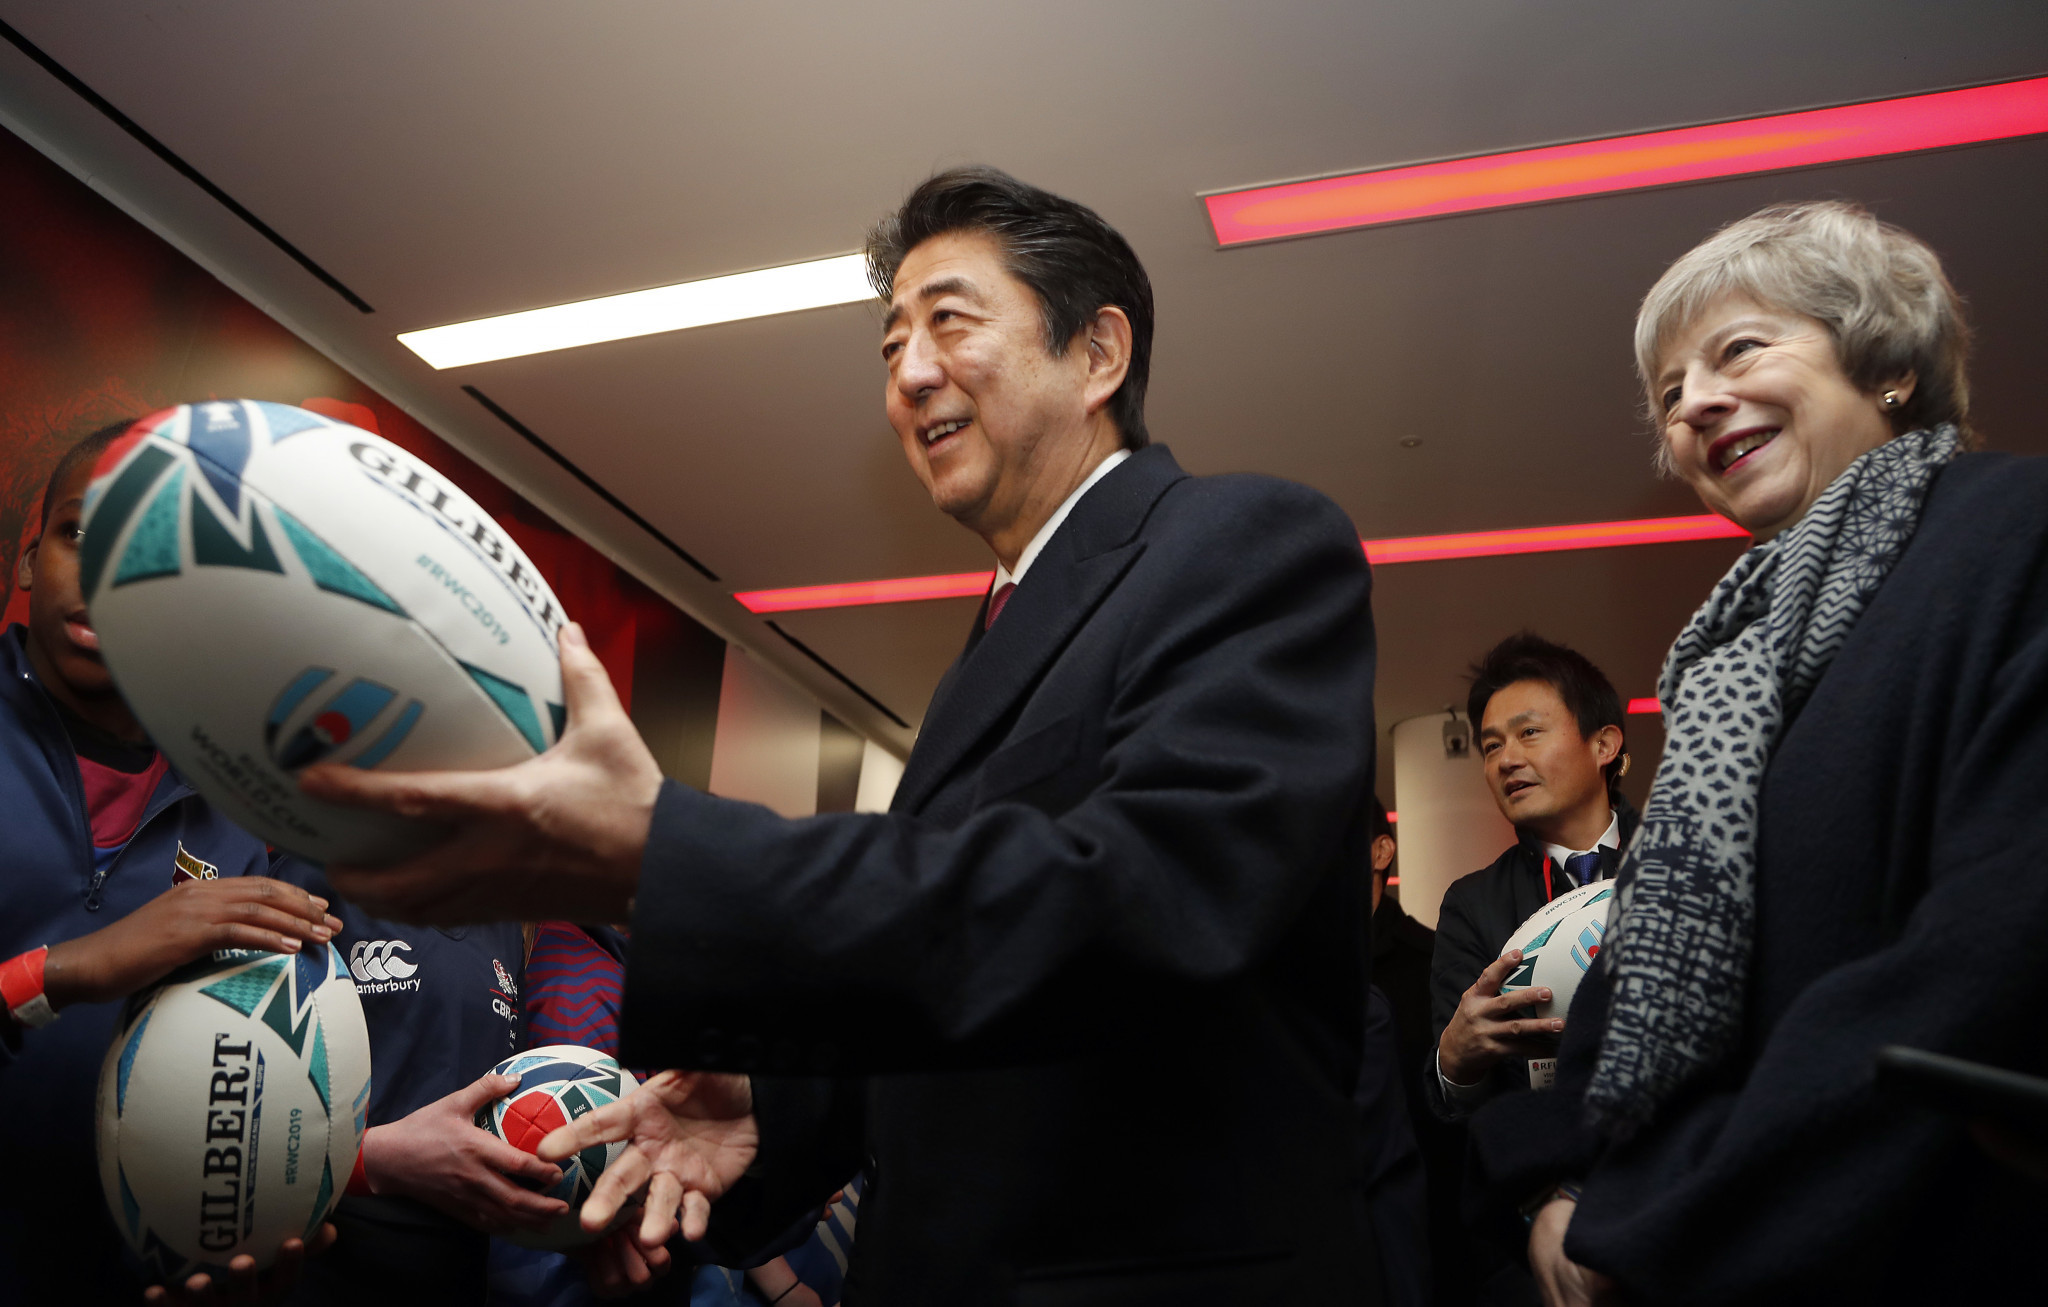 Japanese Prime Minister Shinzō Abe visited Twickenham Stadium with UK counterpart Theresa May during a visit to London this week as his country prepares to host the 2019 Rugby World Cup ©Getty Images